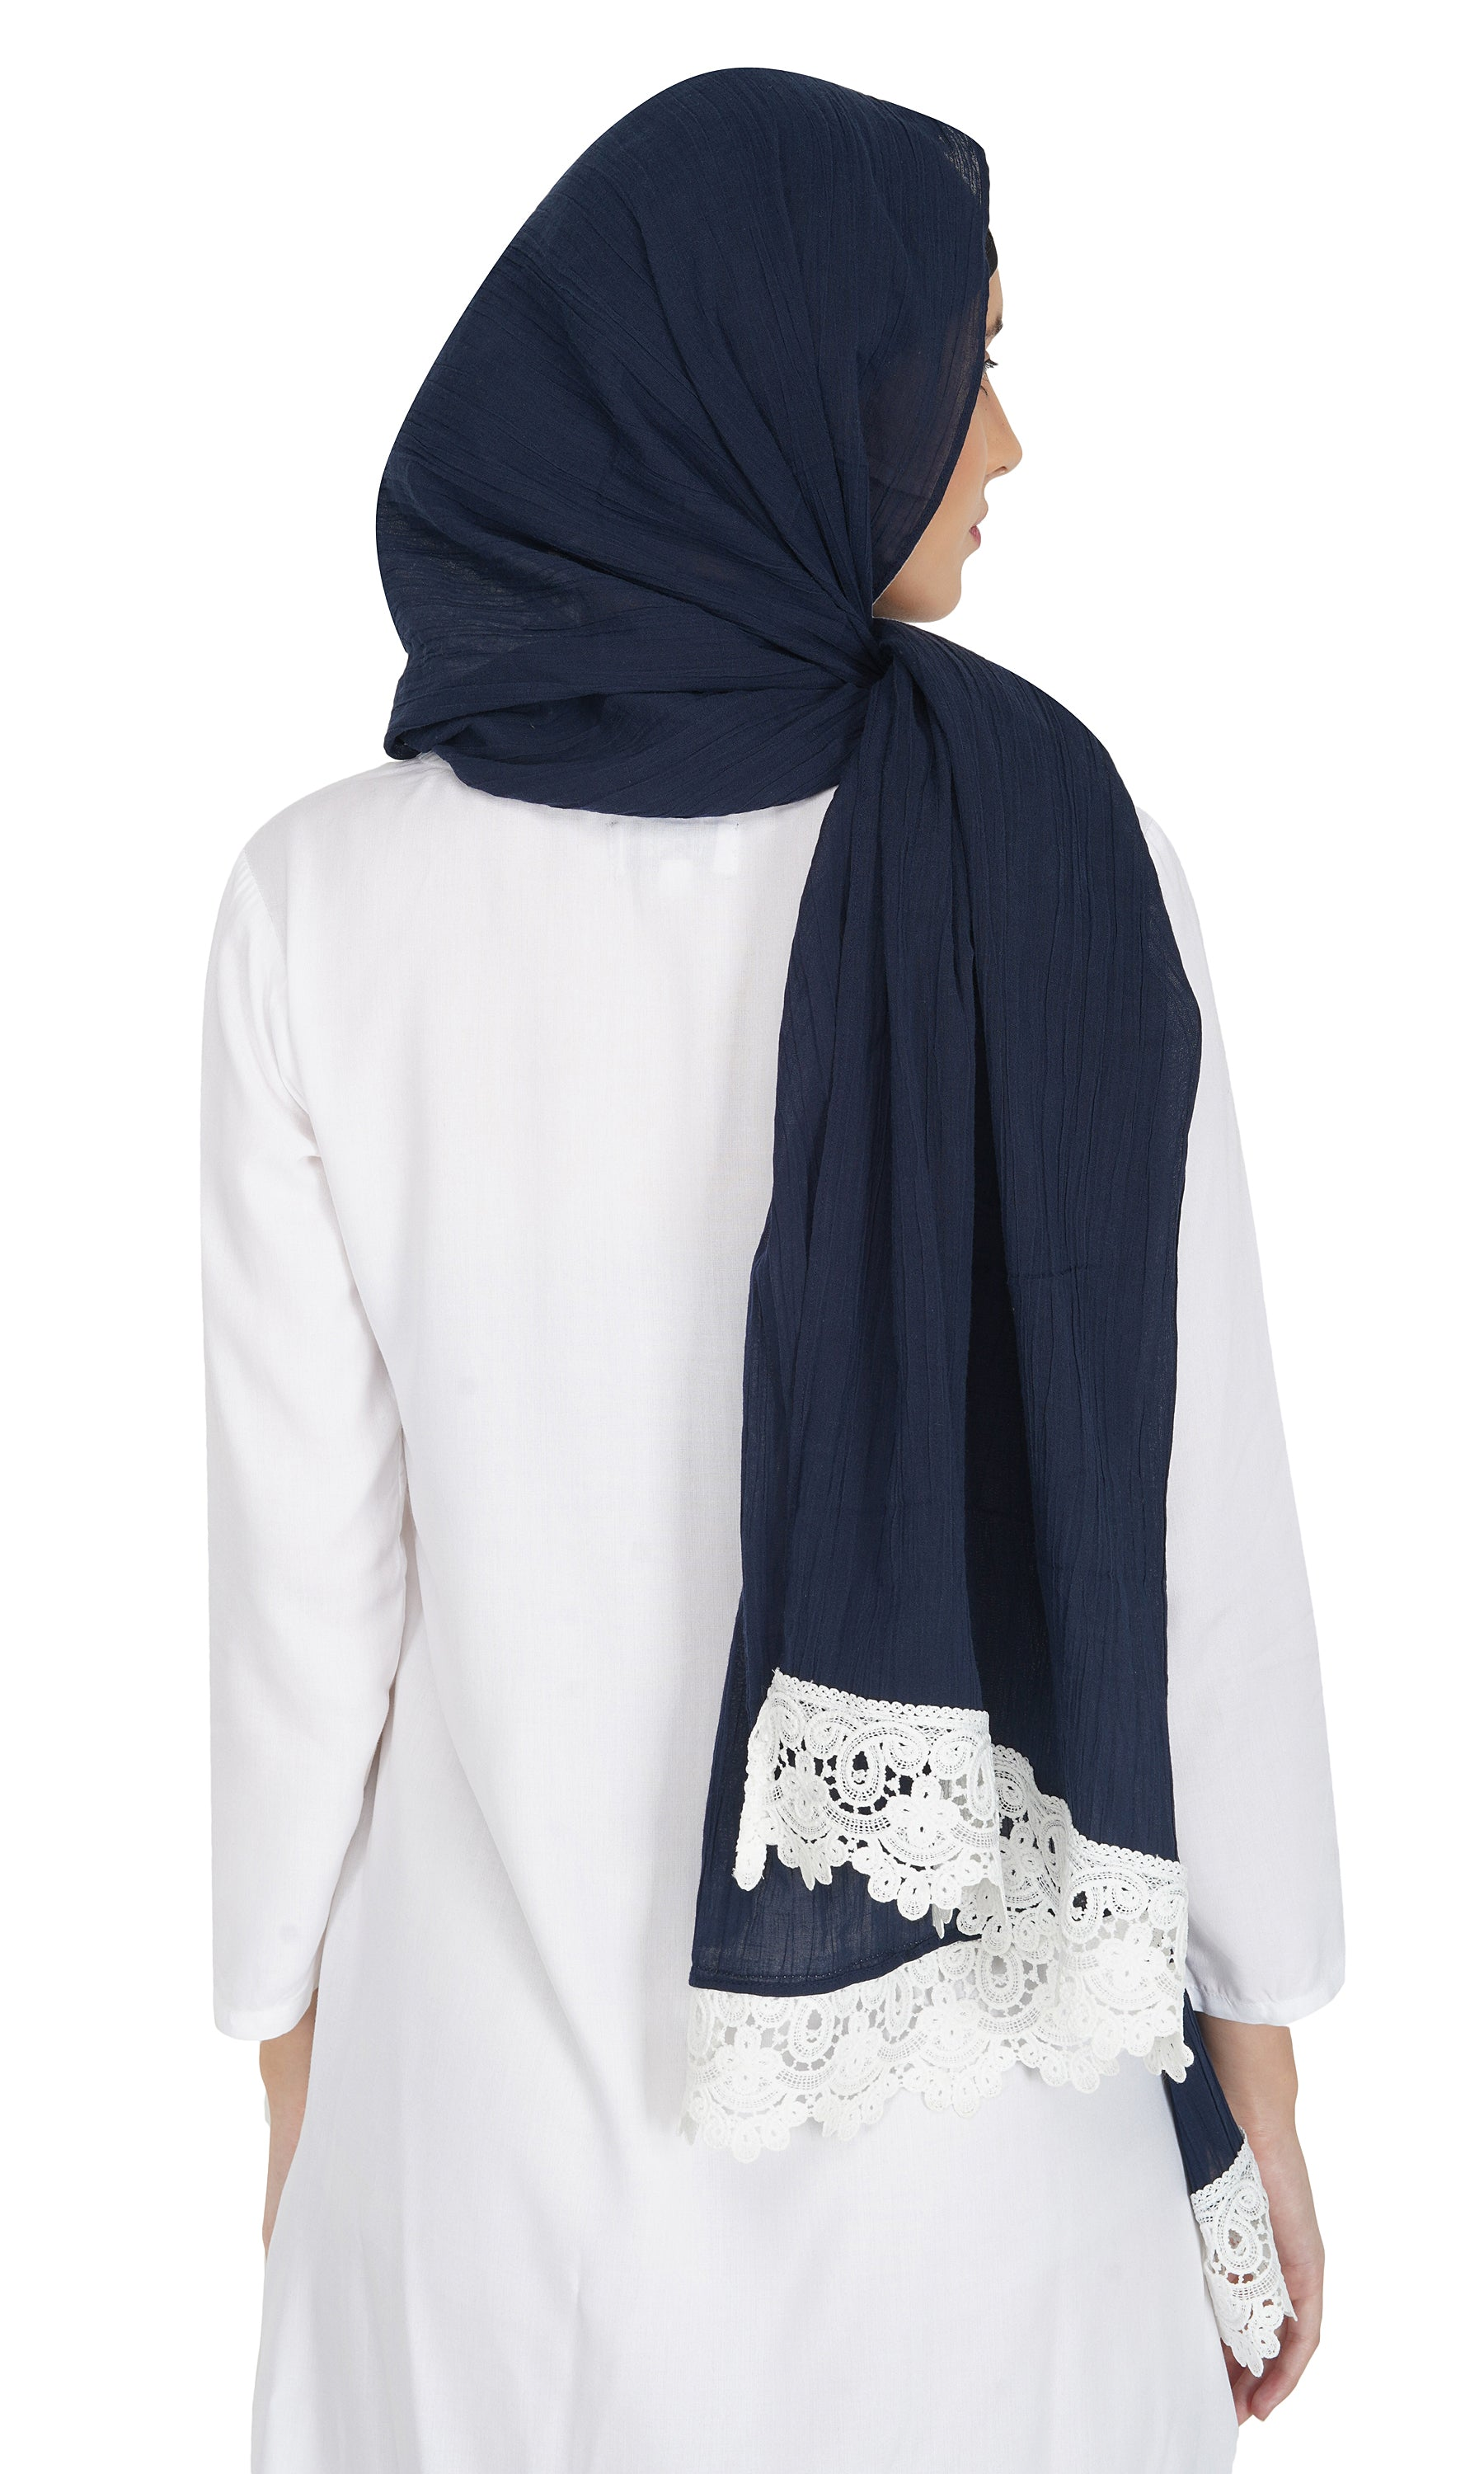 Ruqsar Laced Azure Stole